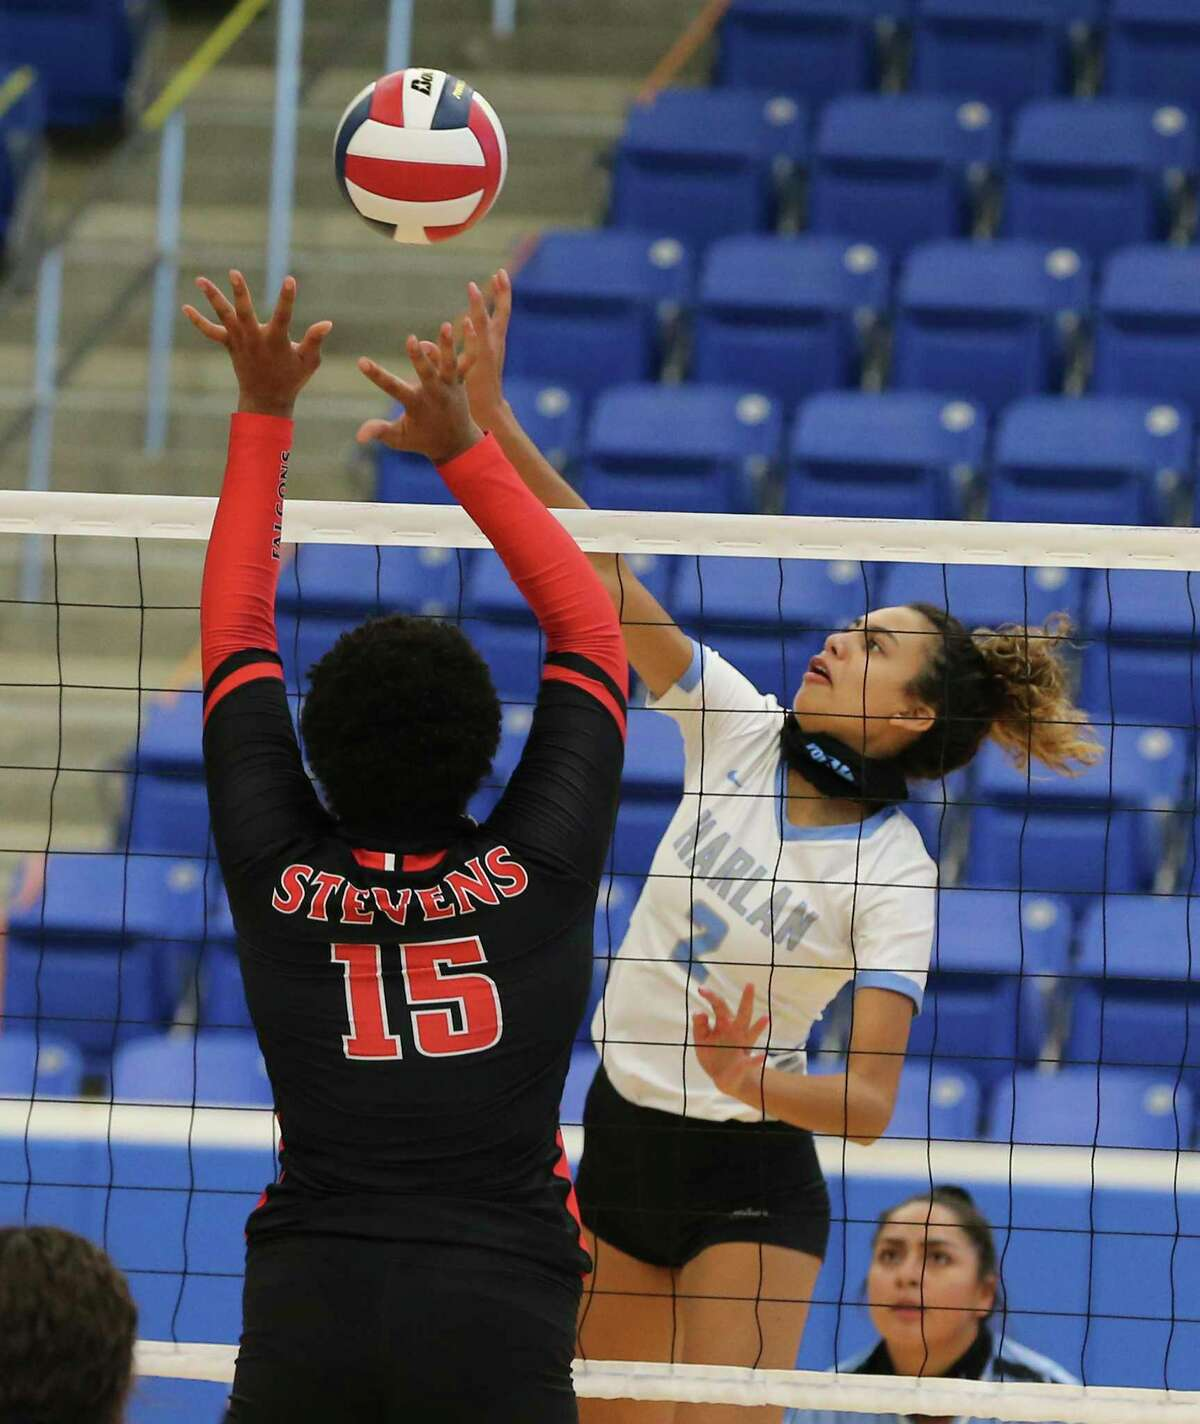 Harlan's Dahlia De Los Santos (02) pushes a shot away from Stevens' Nariah Lee (15) during girls volleyball at Northside Sports Gym on Tuesday, Sept. 22, 2020.